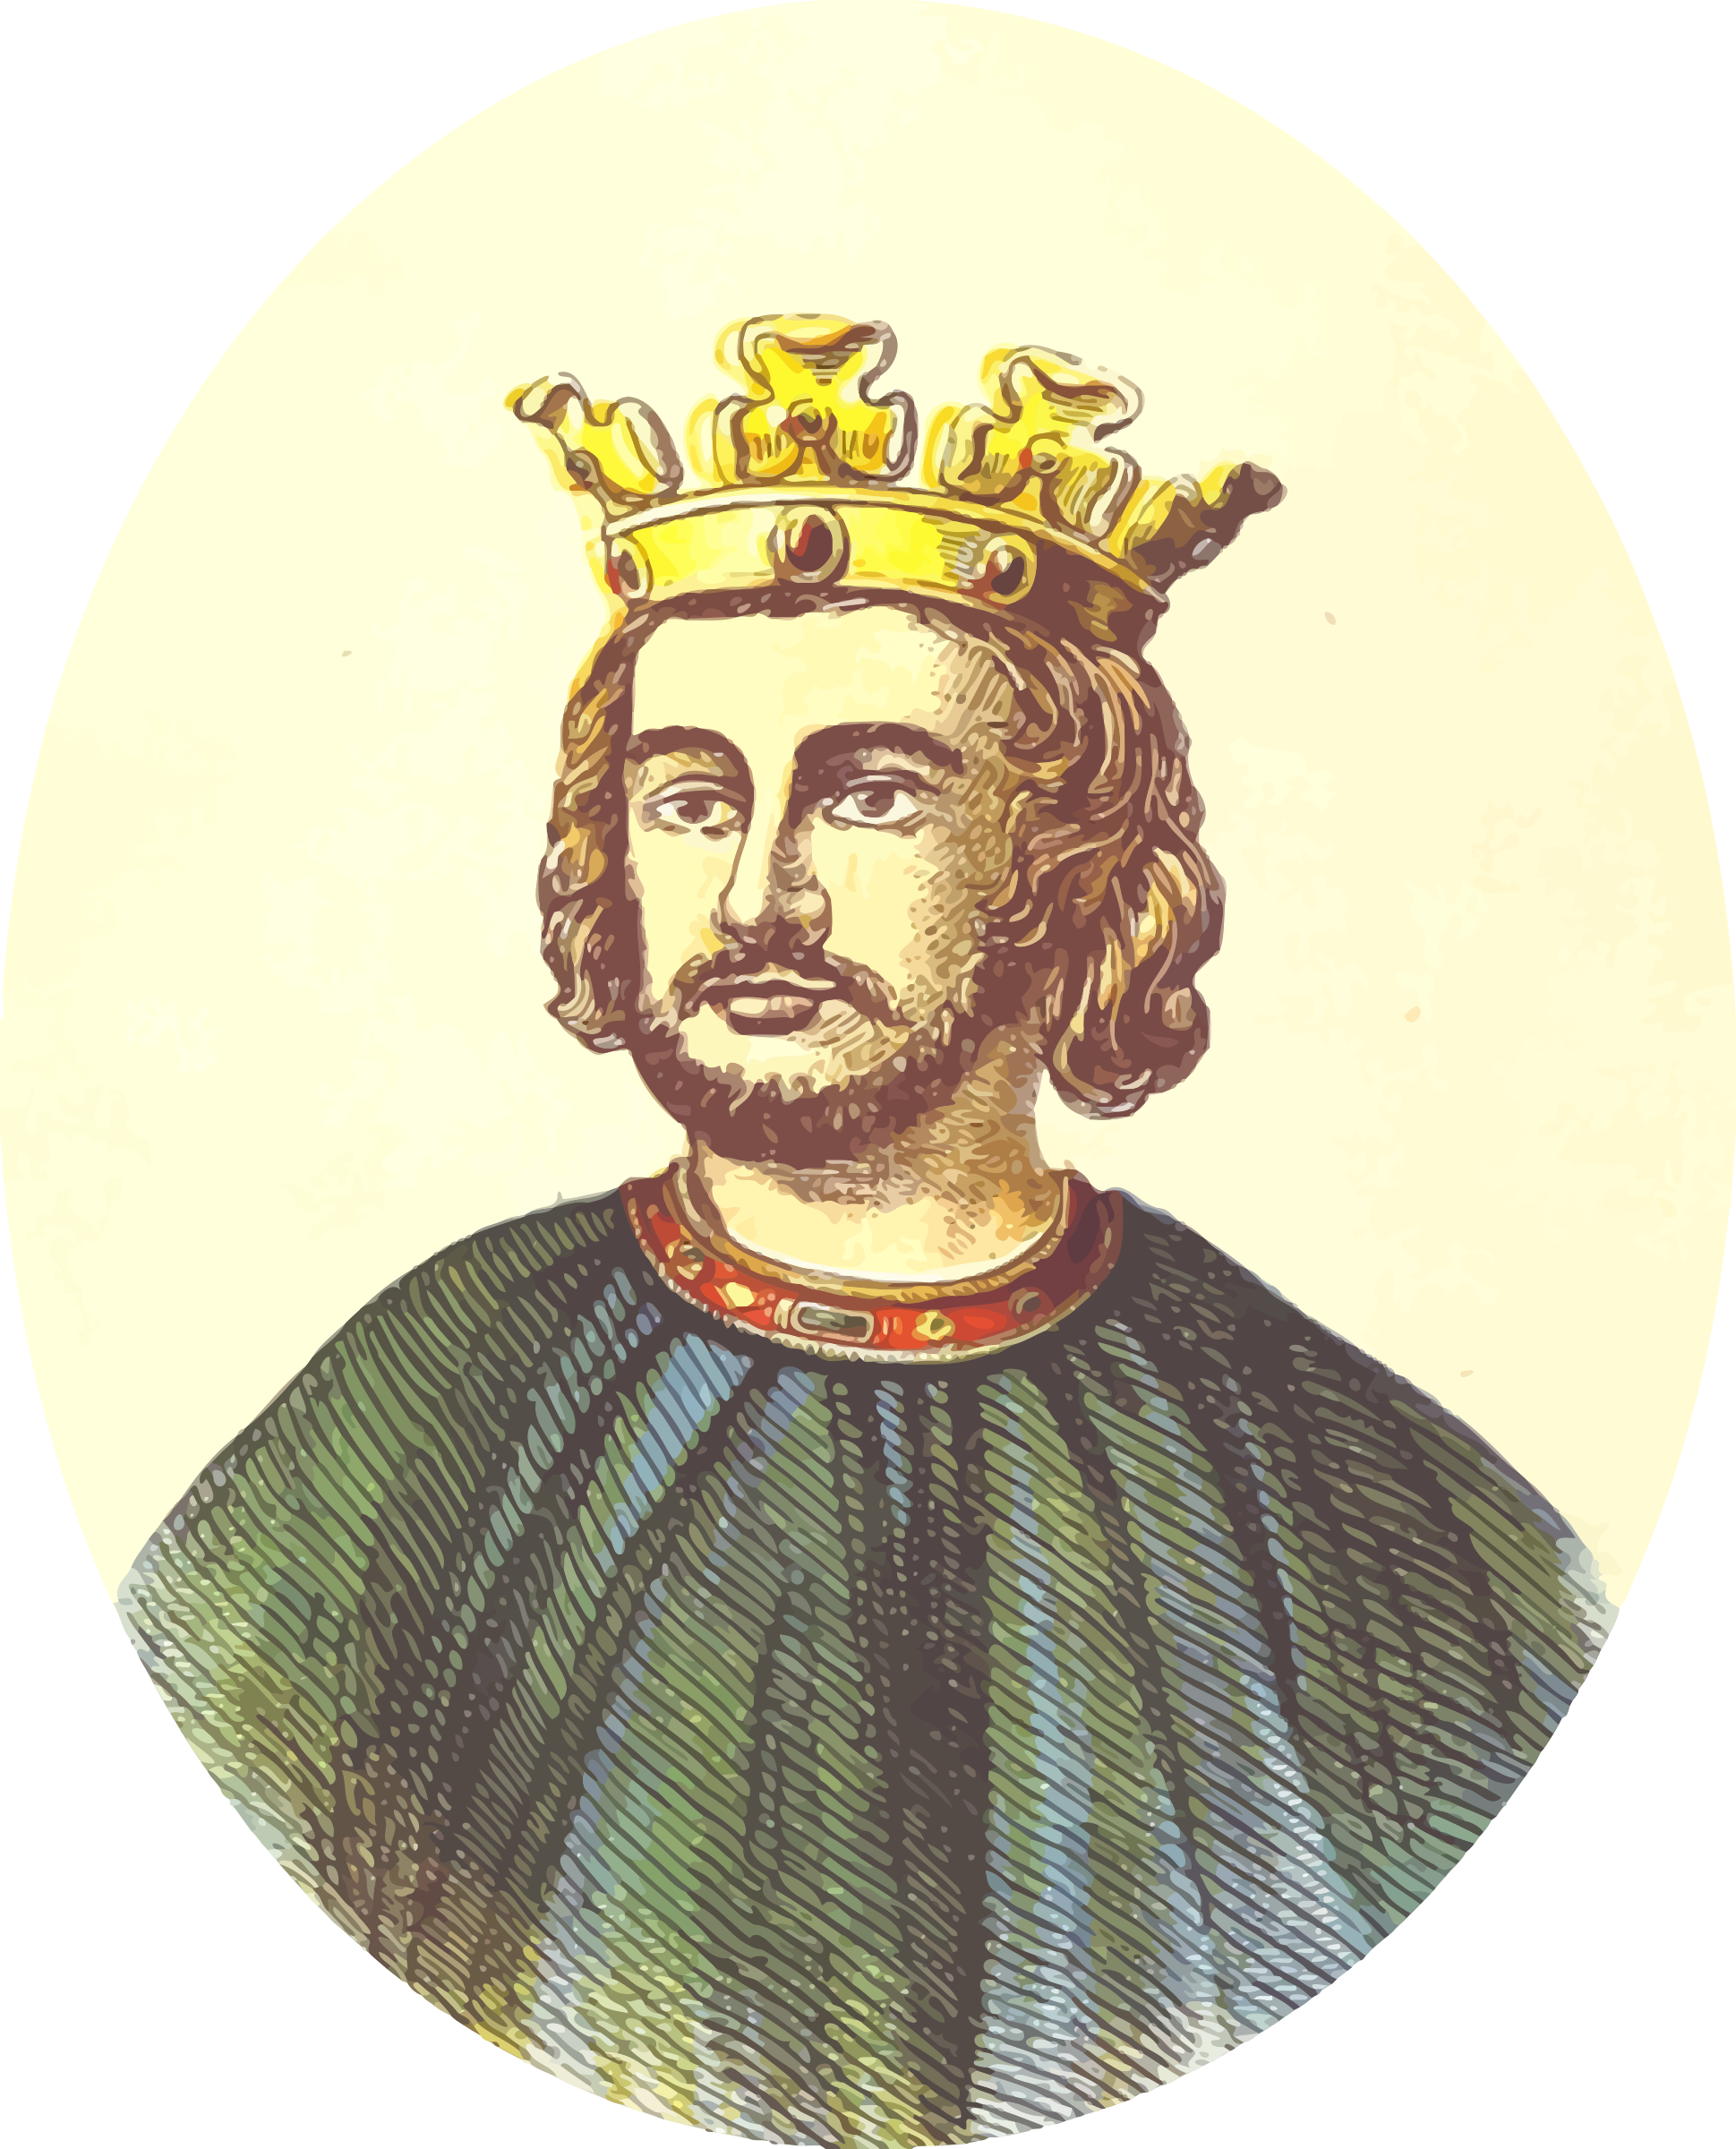 King John by Firkin